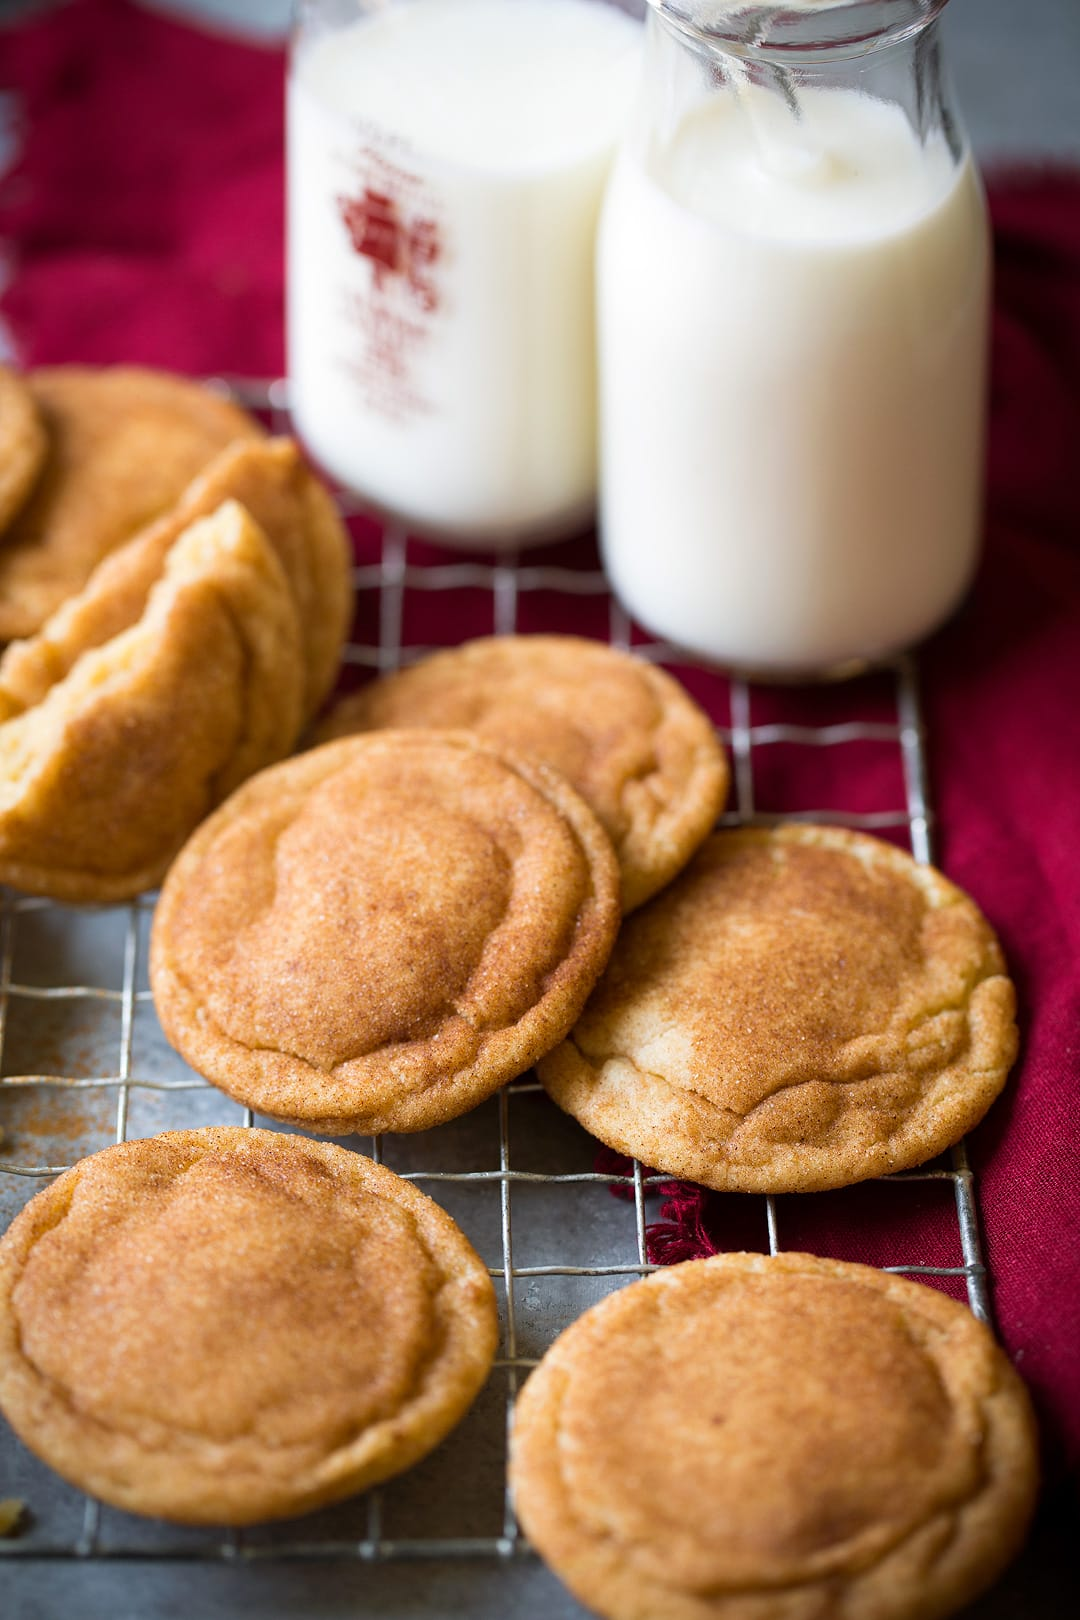 Row of snickerdoodle cookies on a wire cooling rack set over a grey surface with a red napkin on the side and two glass of milk in the background.